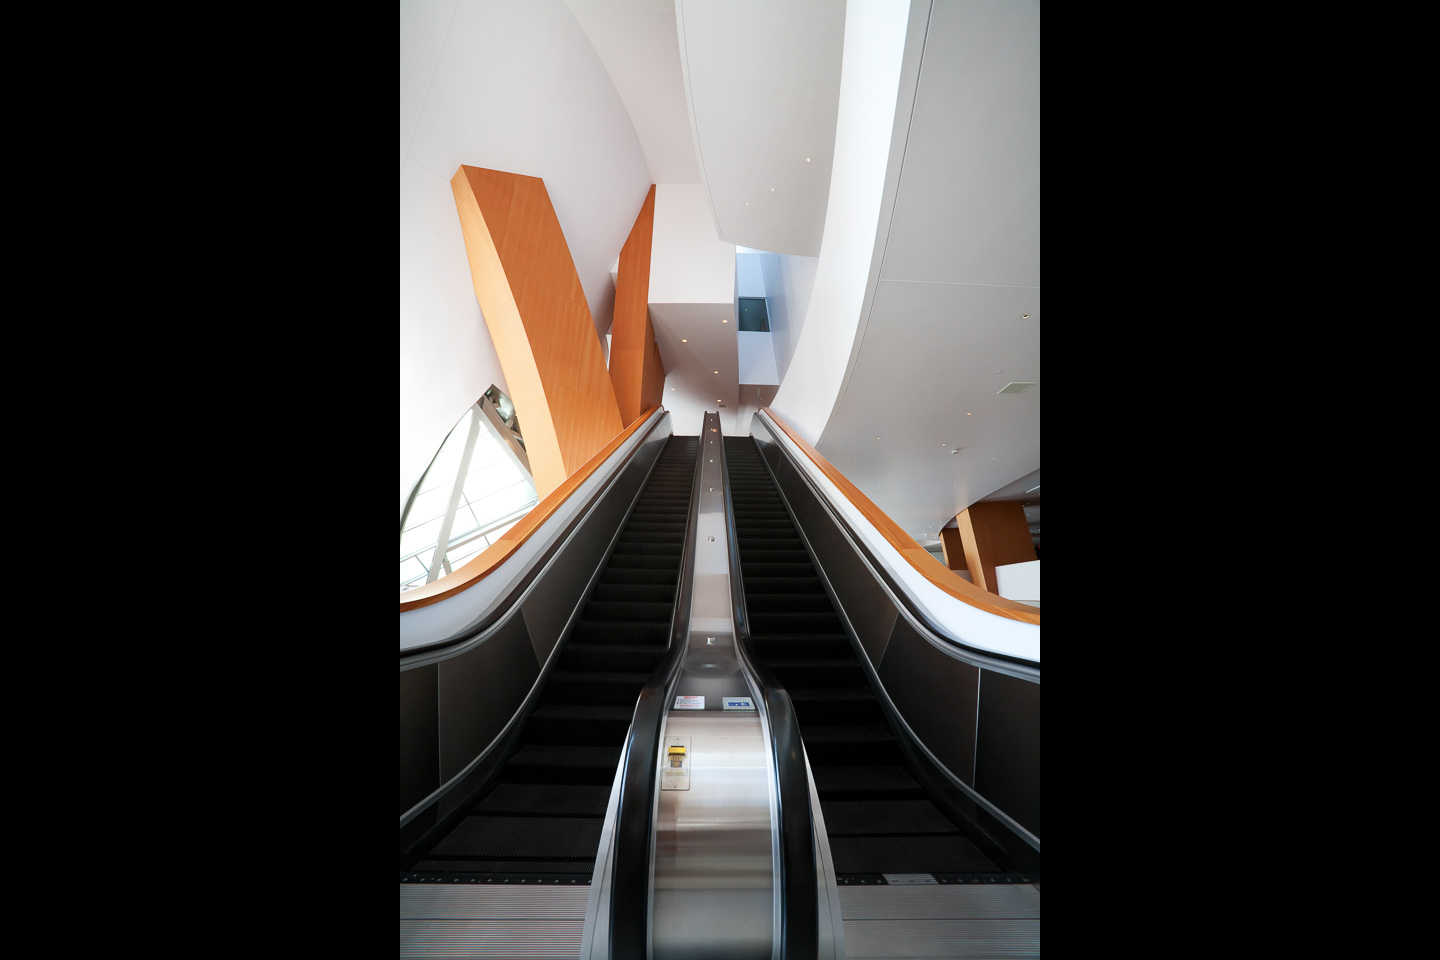 looking up the escalators inside the Walt Disney Concert Hall, designed by Frank Gehry, photographed by Jacob Rosenfeld